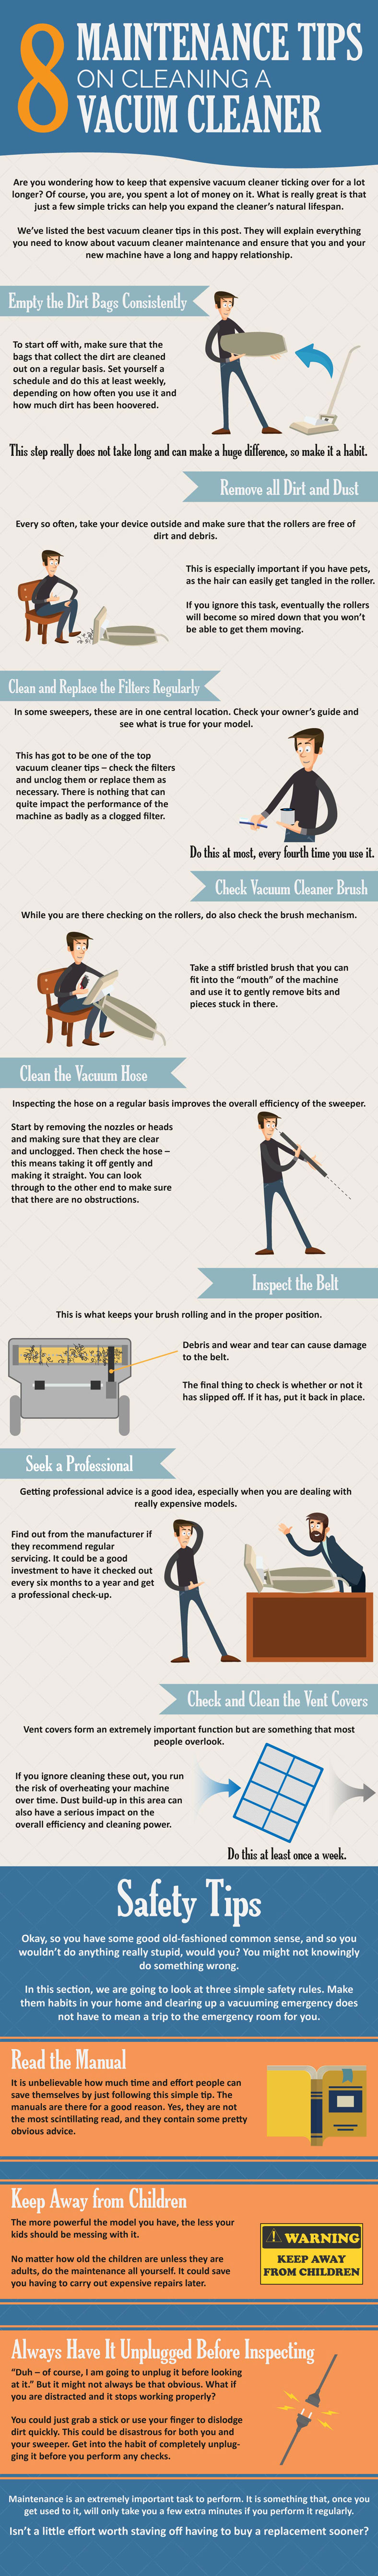 how to use and maintain the vacuum cleaner